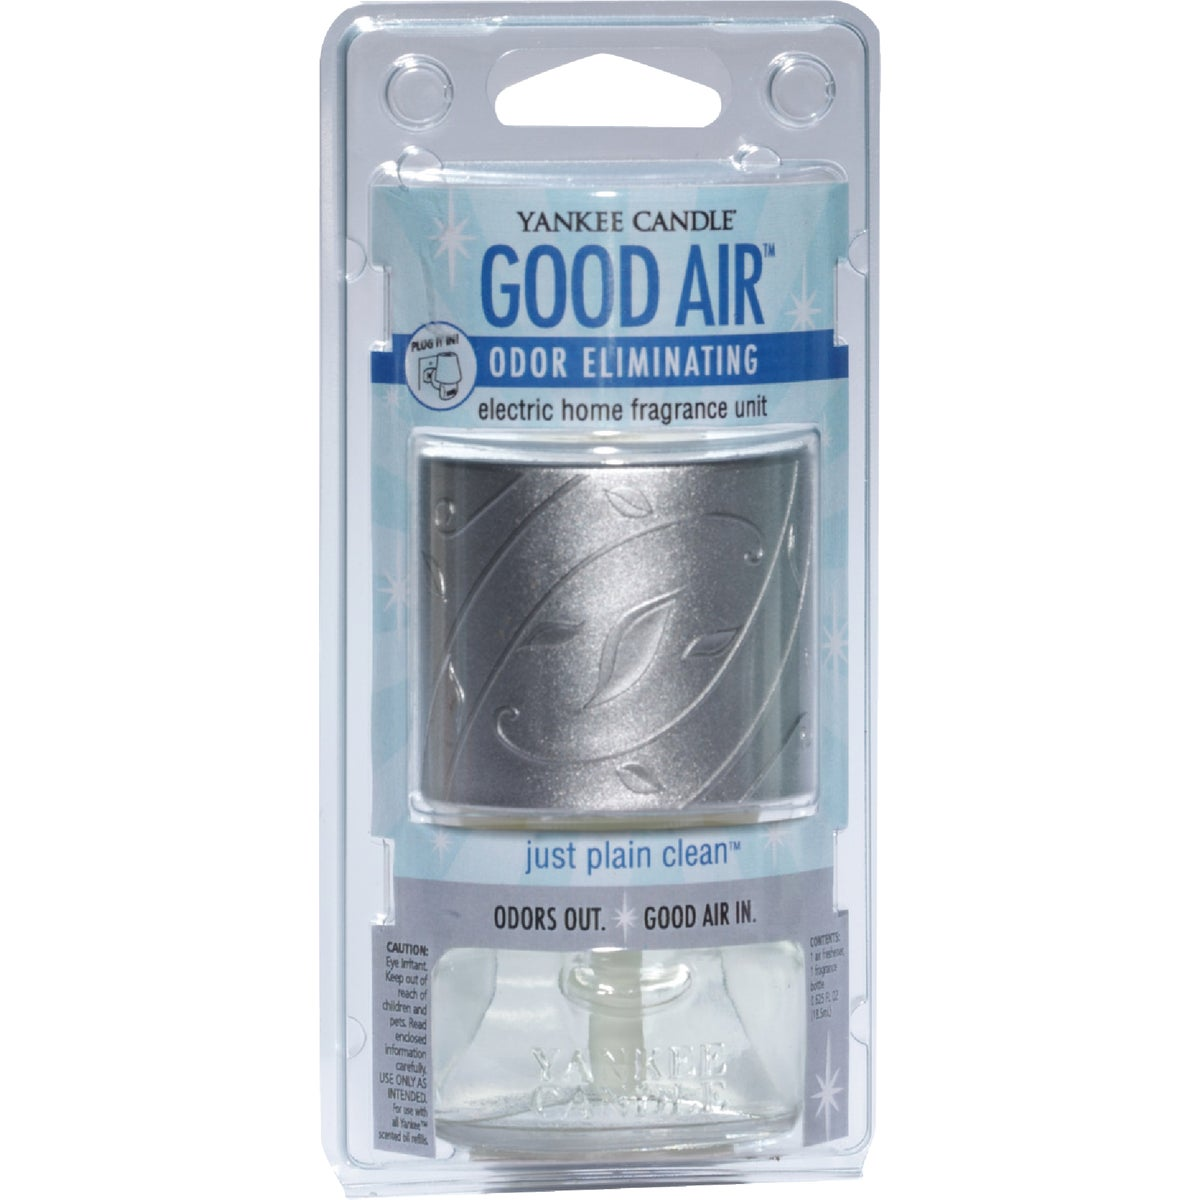 GOOD AIR ELECTRIC BASE - 1155727 by Yankee Candle Co